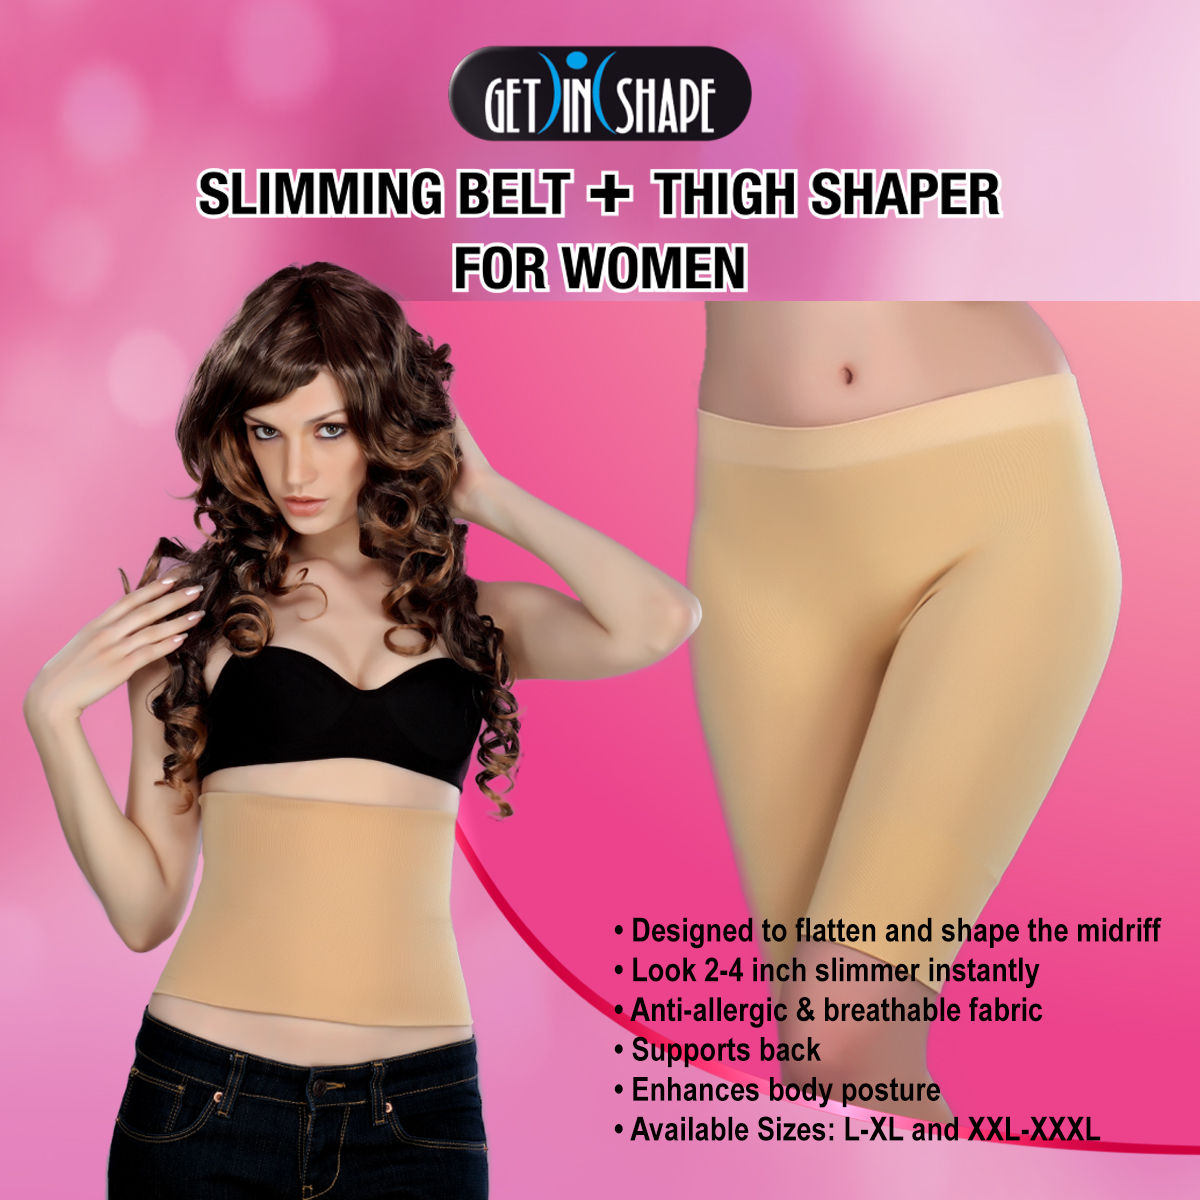 7c348f58af Buy Get In Shape Comfortable Slimming Belt + Thigh Shaper for Women Online  at Best Price in India on Naaptol.com